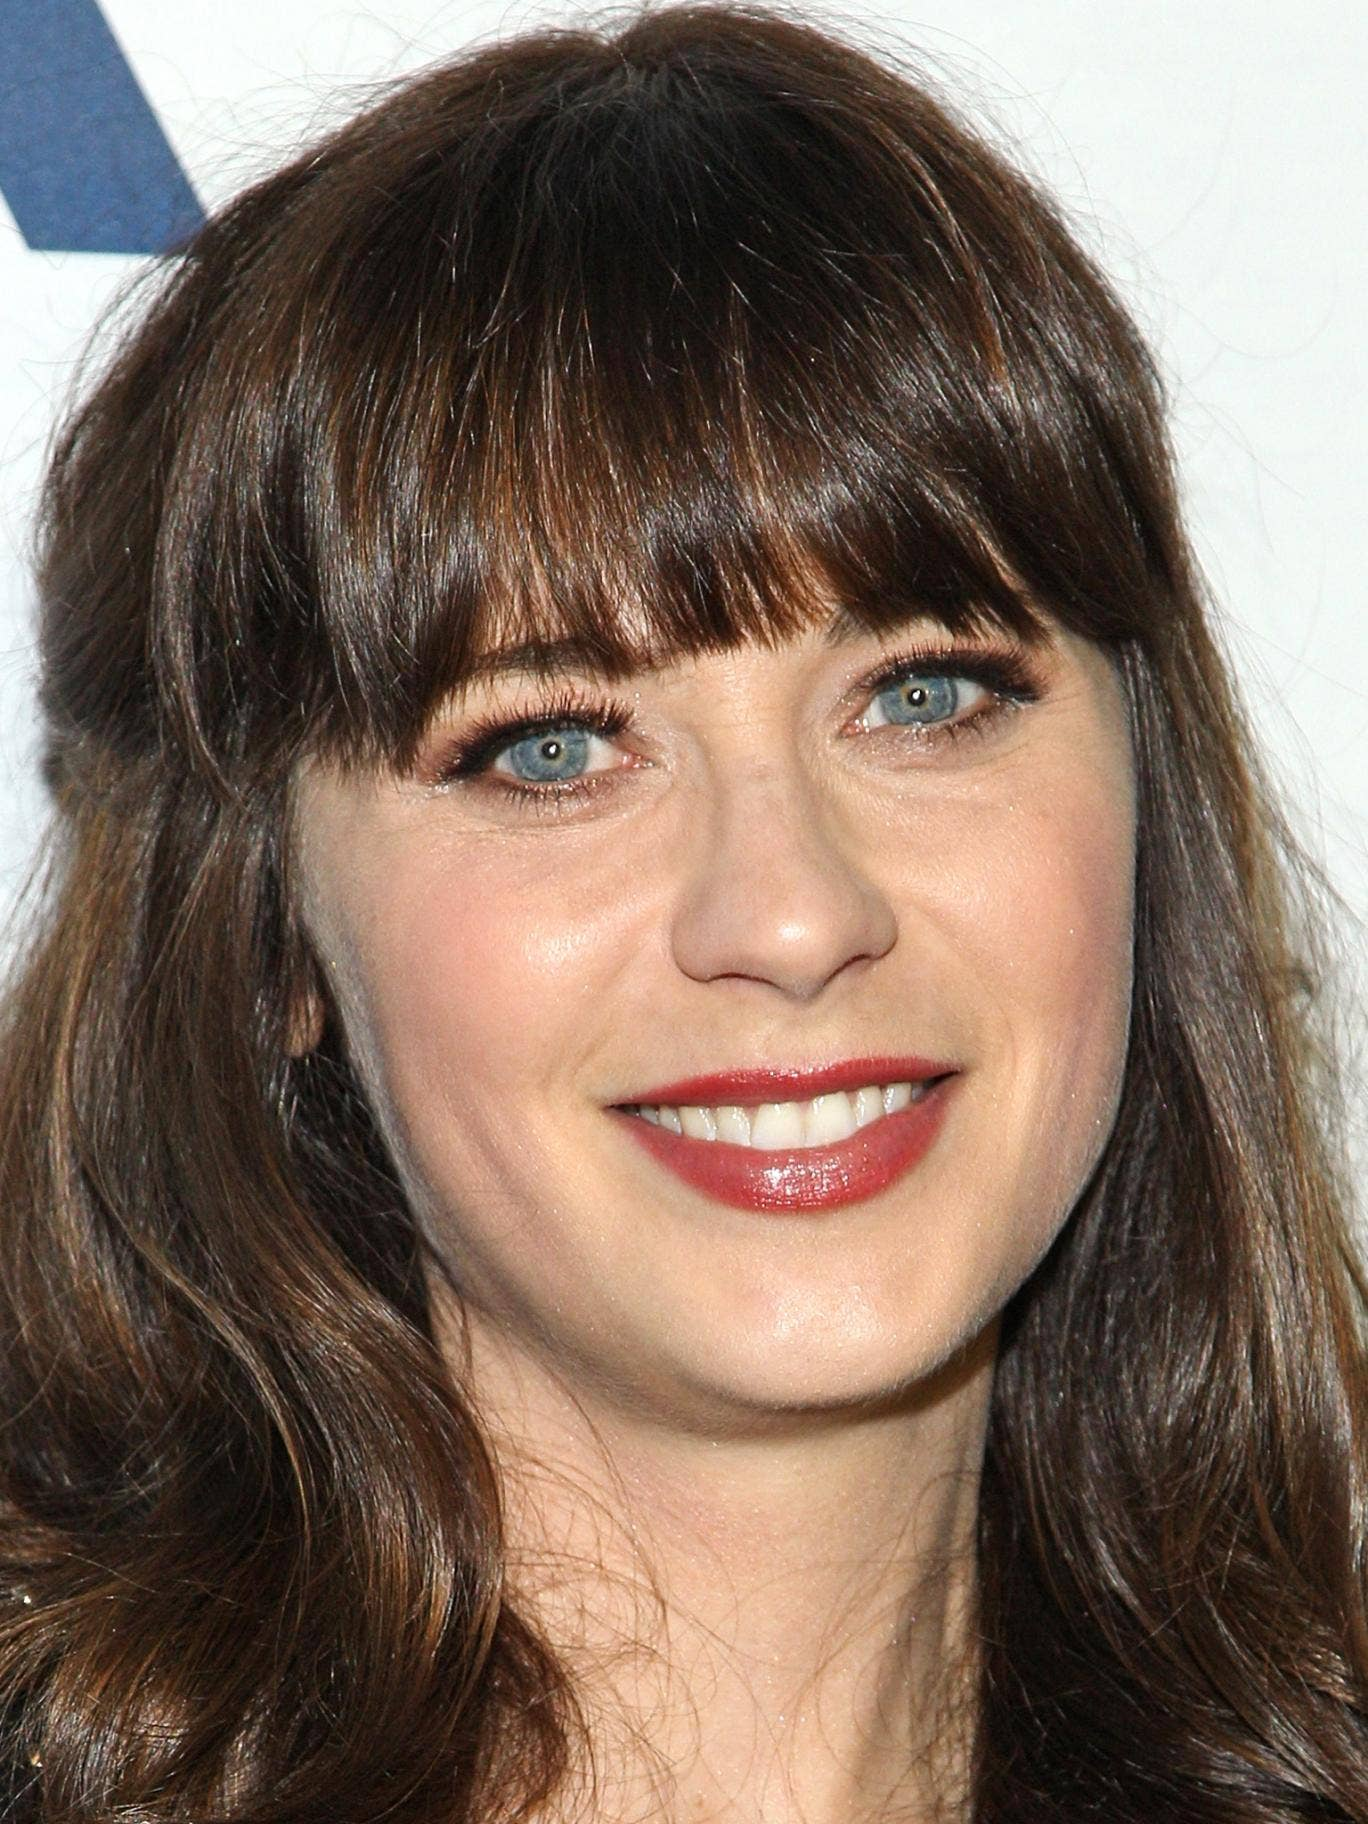 Zooey Deschanel said she gets 'overwhelmed' by the negativity that exists online